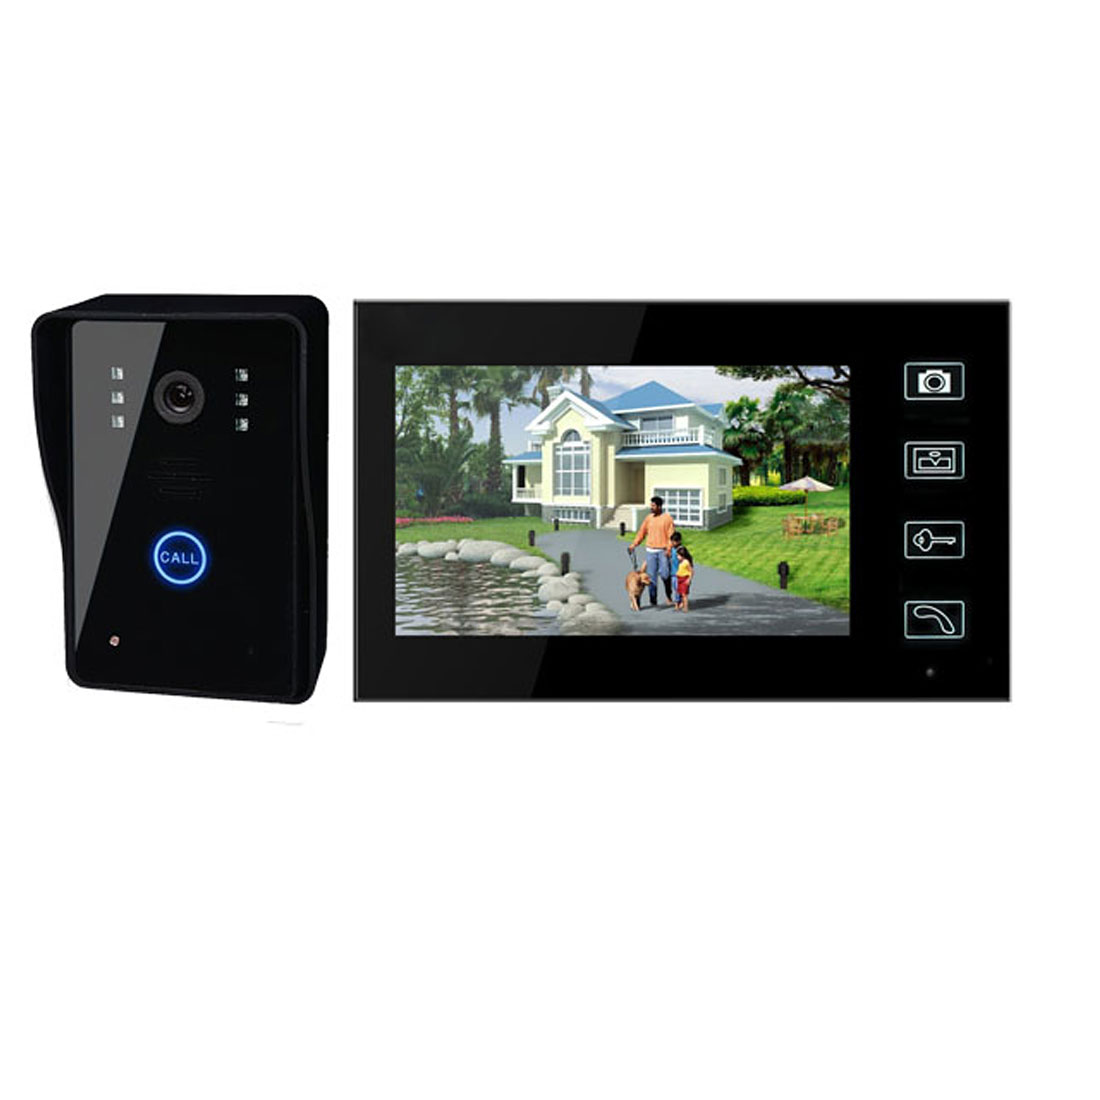 "AC 100V-240V US Plug Waterproof 7"" LCD Wireless Video Door Phone Doorbell Intercom Night Vision"